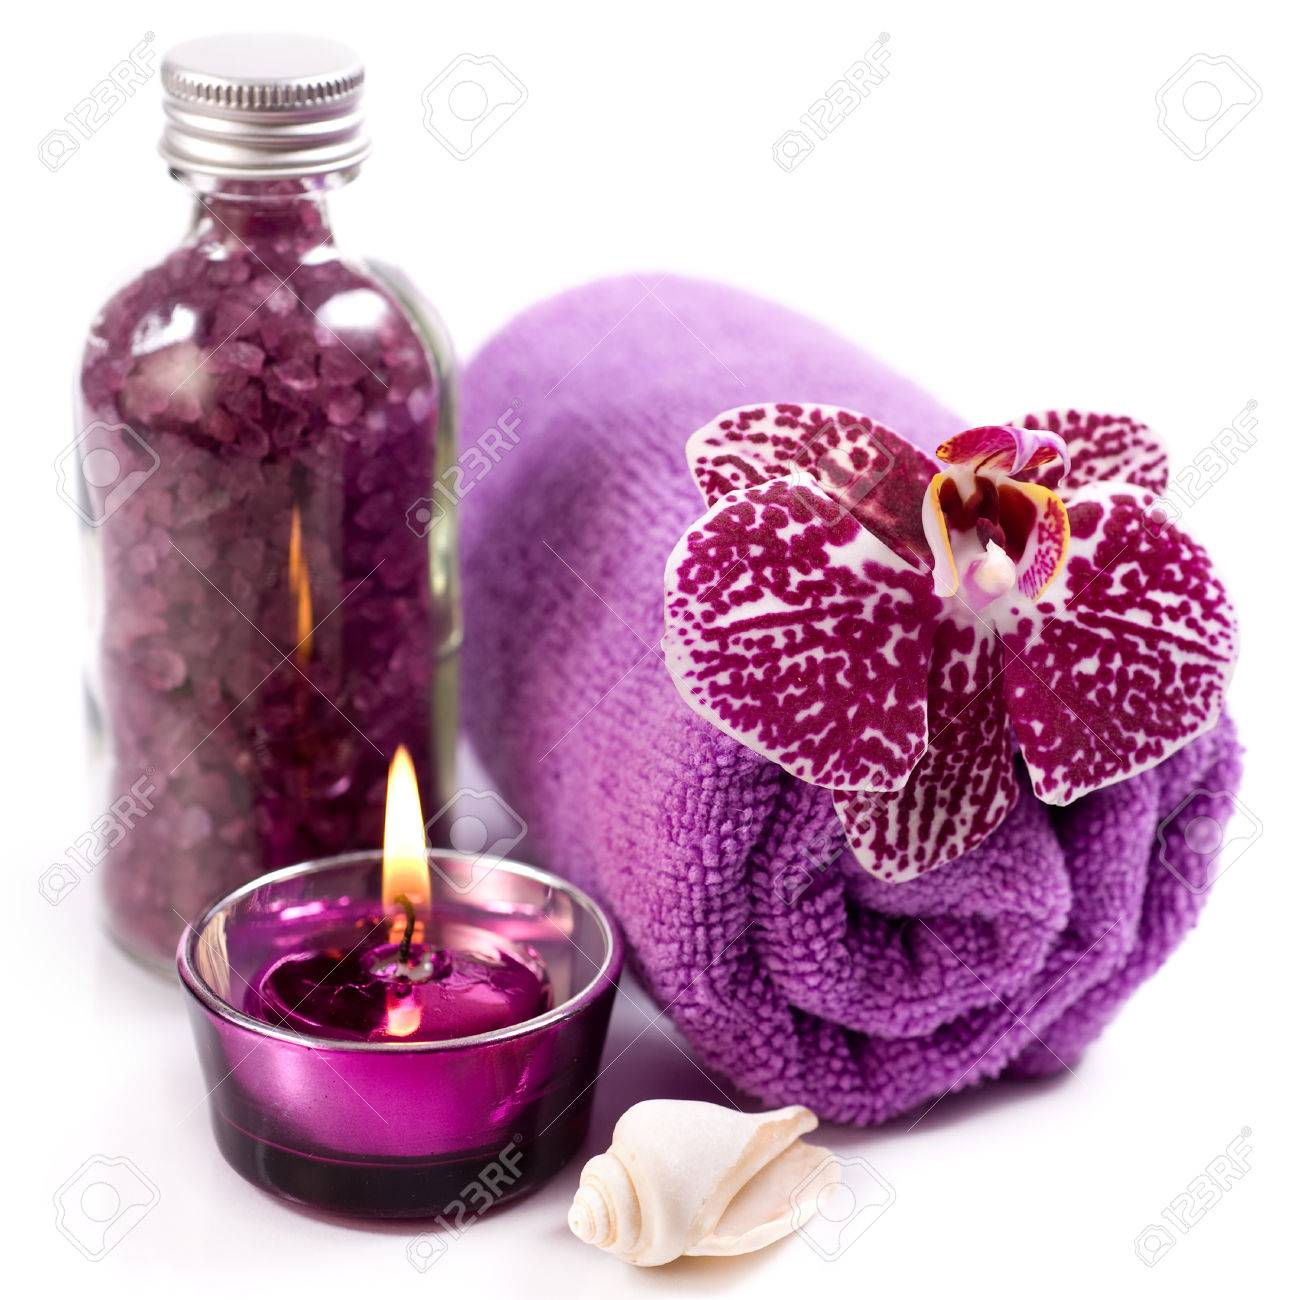 Spa concept ( Orchid, sea salt, candle and towel) - 22738340